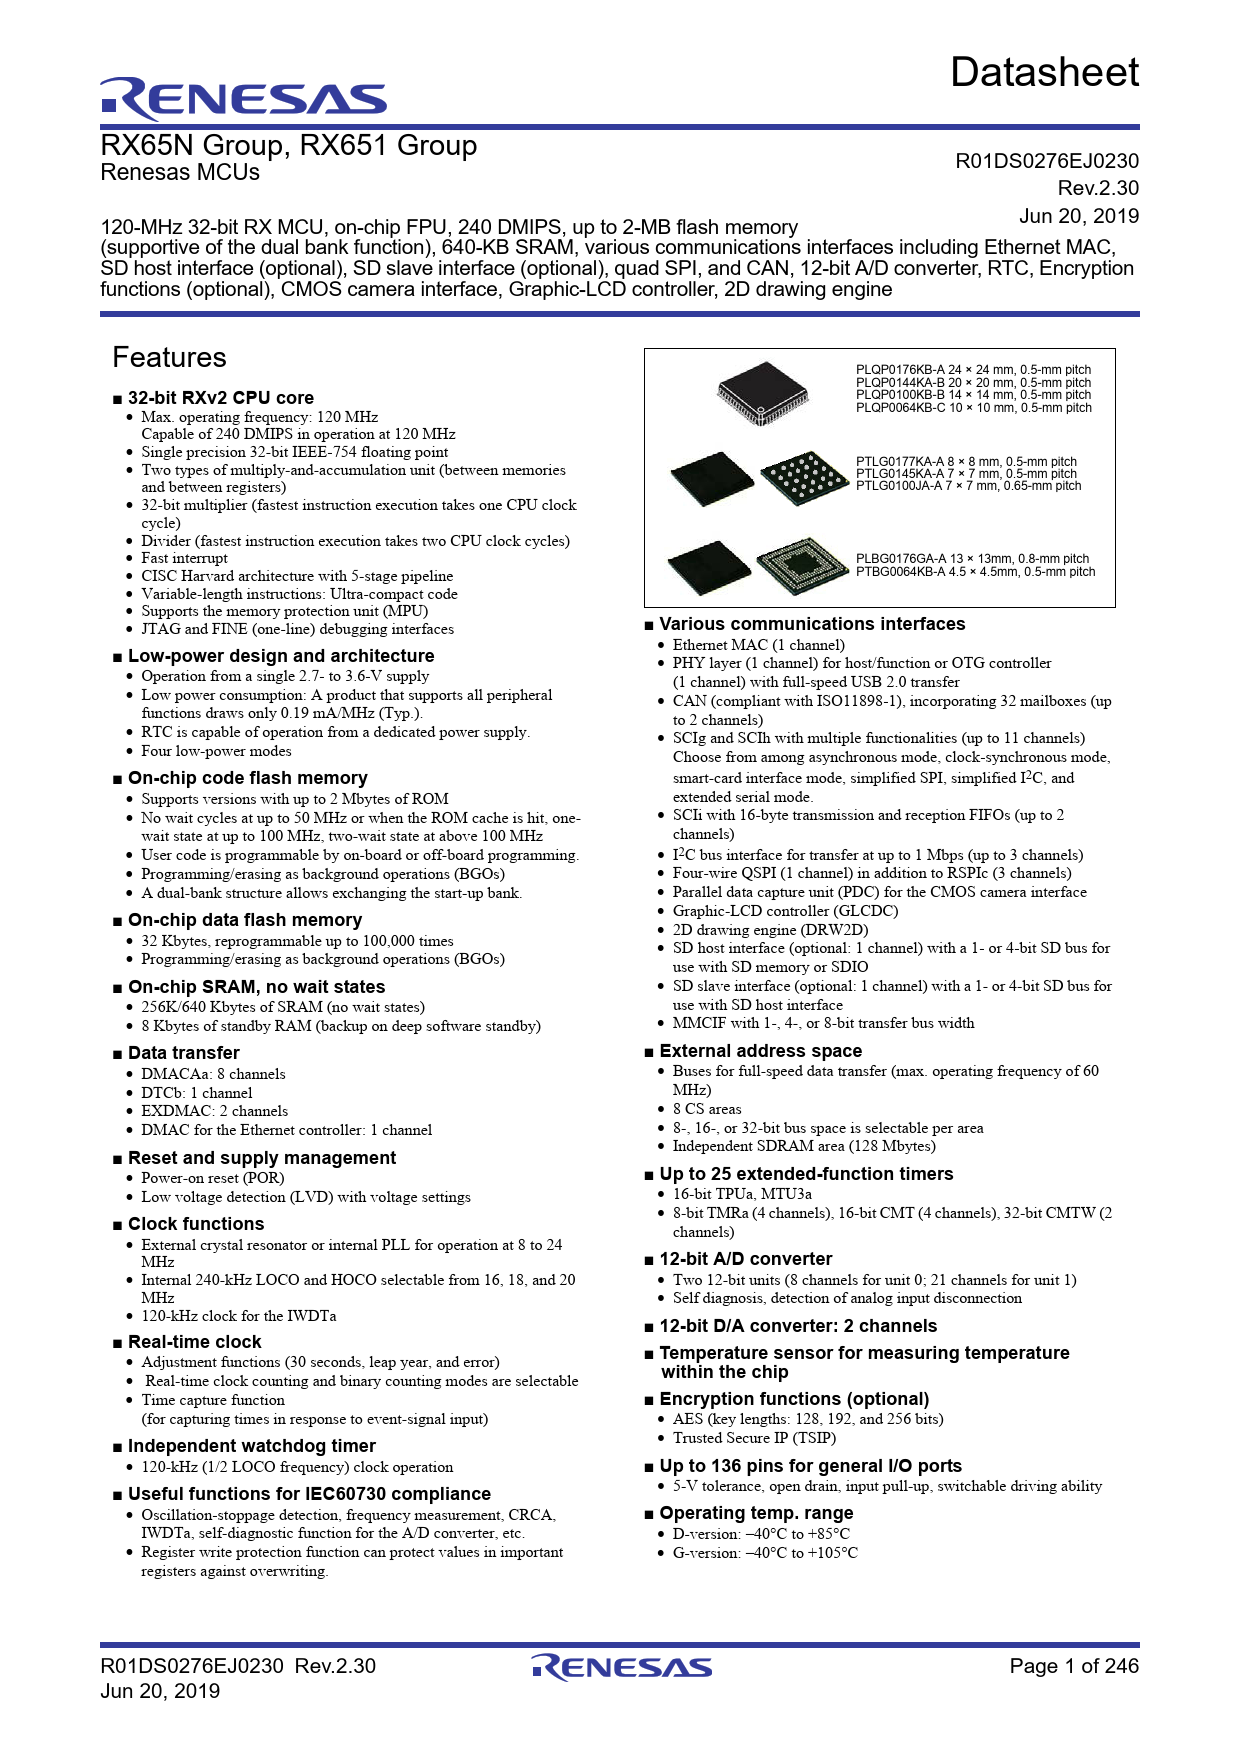 Datasheet RX65N, RX651 Groups Renesas